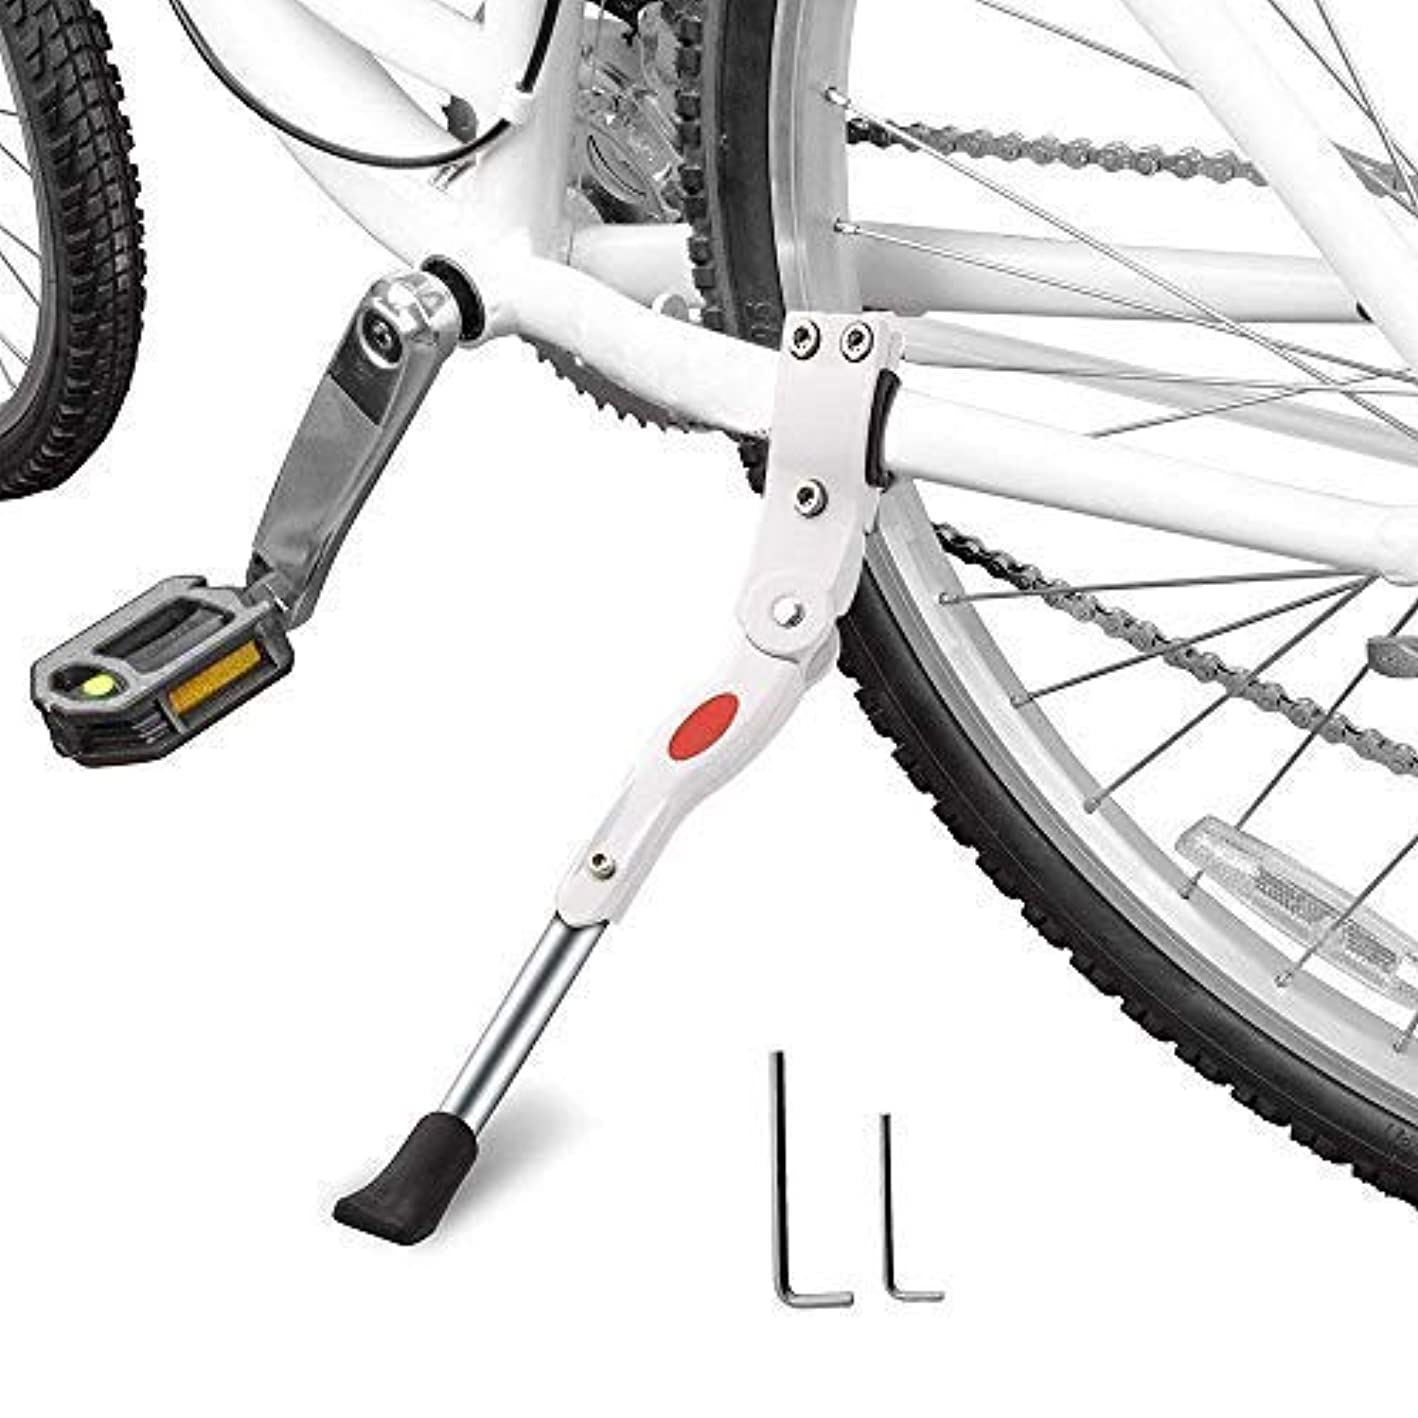 StyleZ Adjustable Bicycle Kickstand MTB Road Bicycle Parking Rack Alloy Bike Support Side Kick Stand Foot (White)